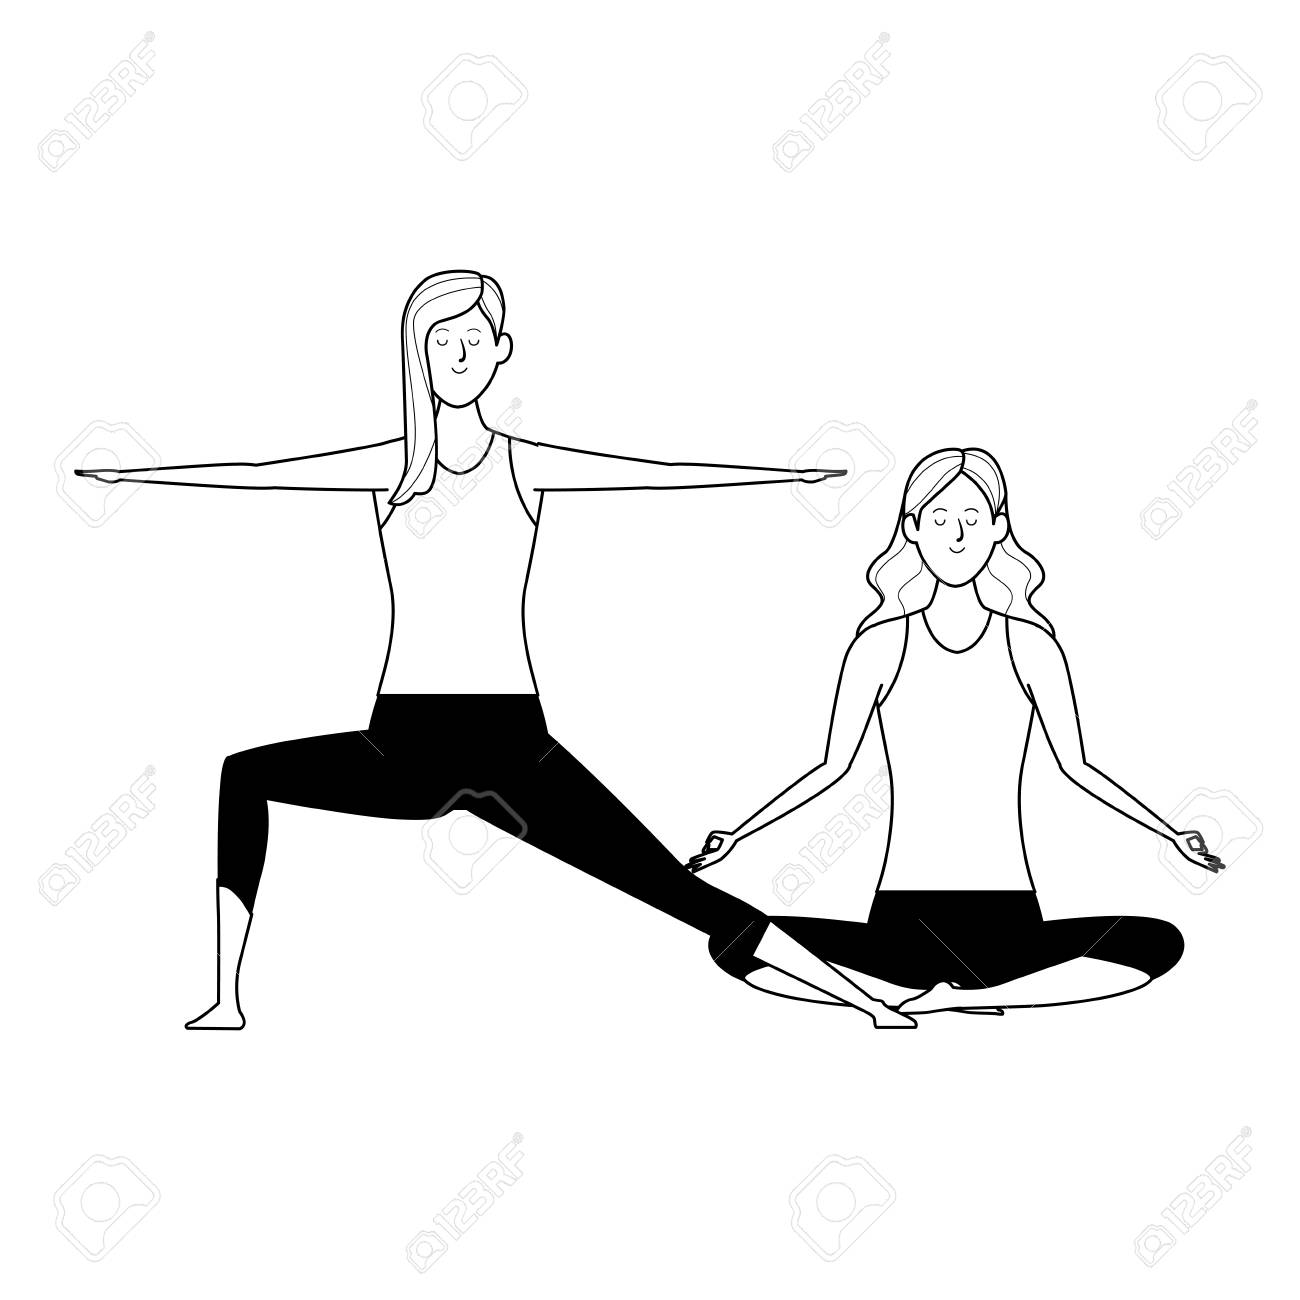 Women Yoga Poses Avatar Cartoon Character Black And White Vector Royalty Free Cliparts Vectors And Stock Illustration Image 120002369